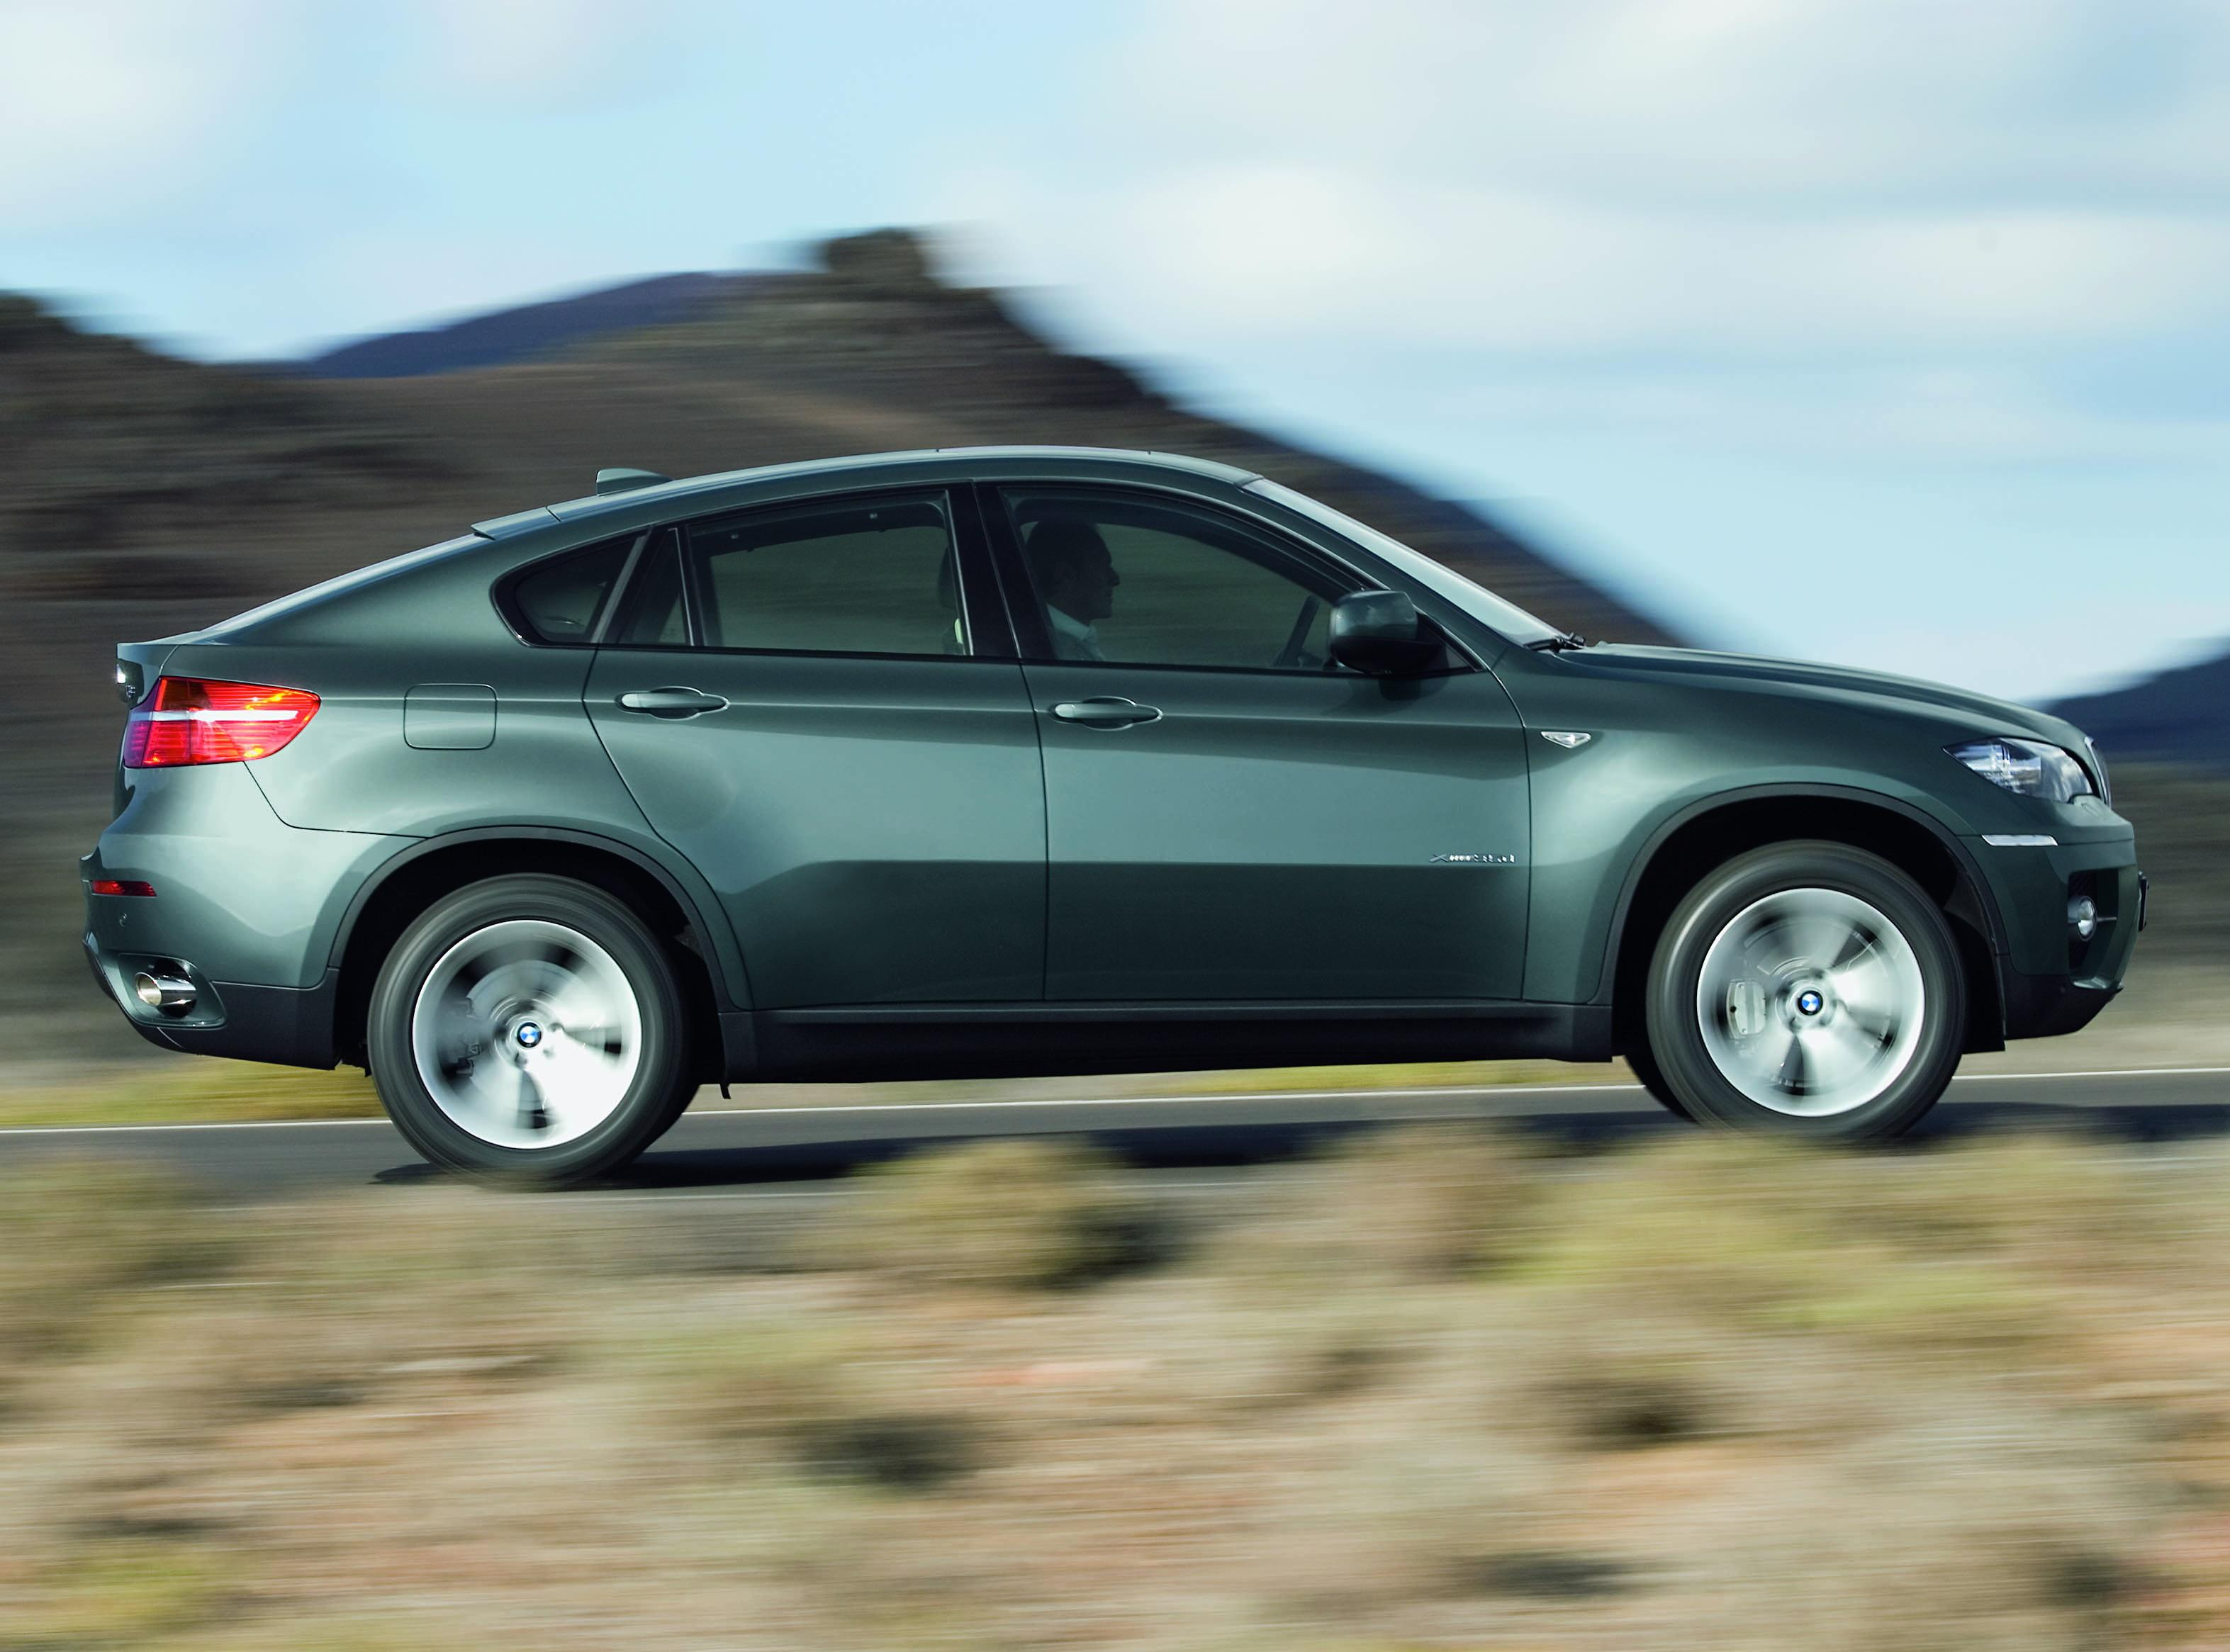 2008 BMW X6 Review - Top Speed